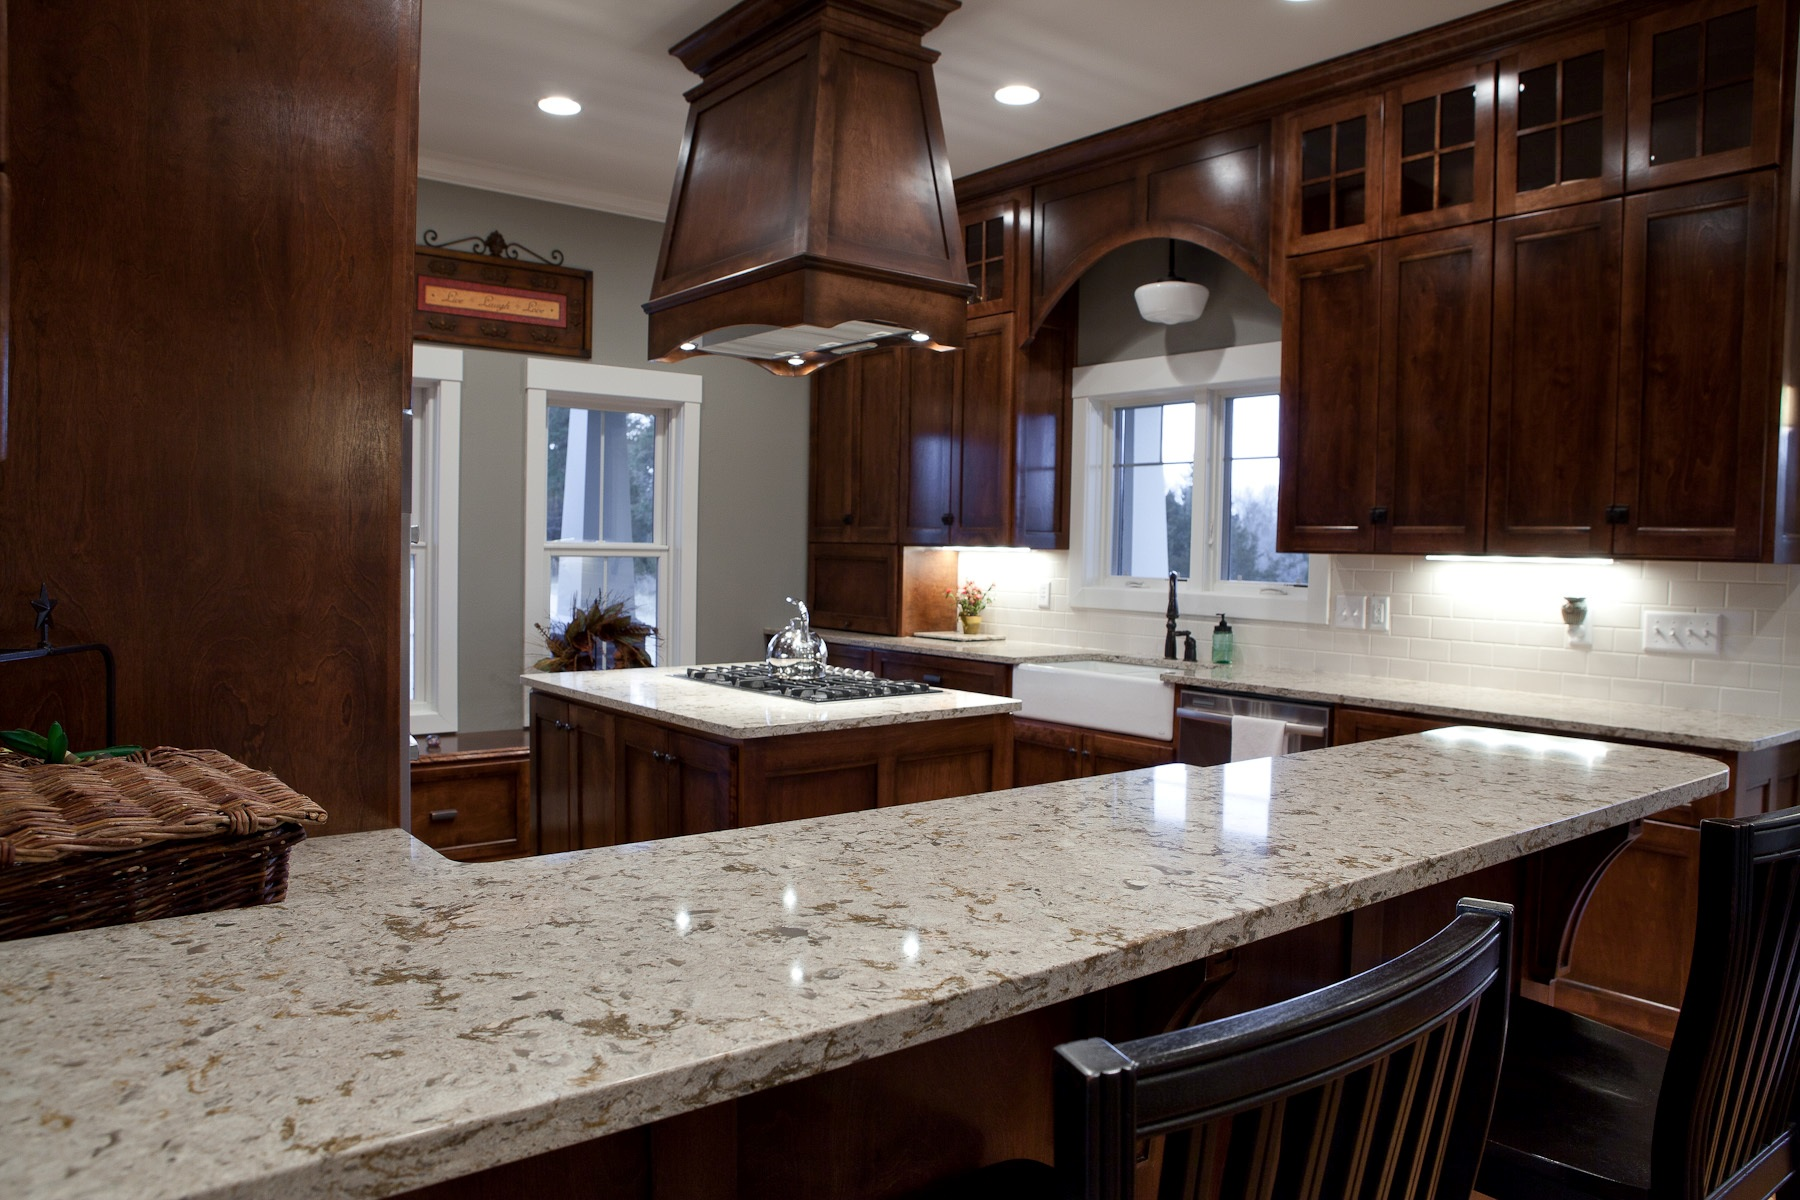 18 Kitchen Countertop Options and Ideas for 2019 on ideas for kitchen island, ideas for granite tops, ideas for kitchen cabinets, ideas for yellow kitchen, ideas for white kitchen, ideas for kitchen counter, ideas for countertops kitchen,